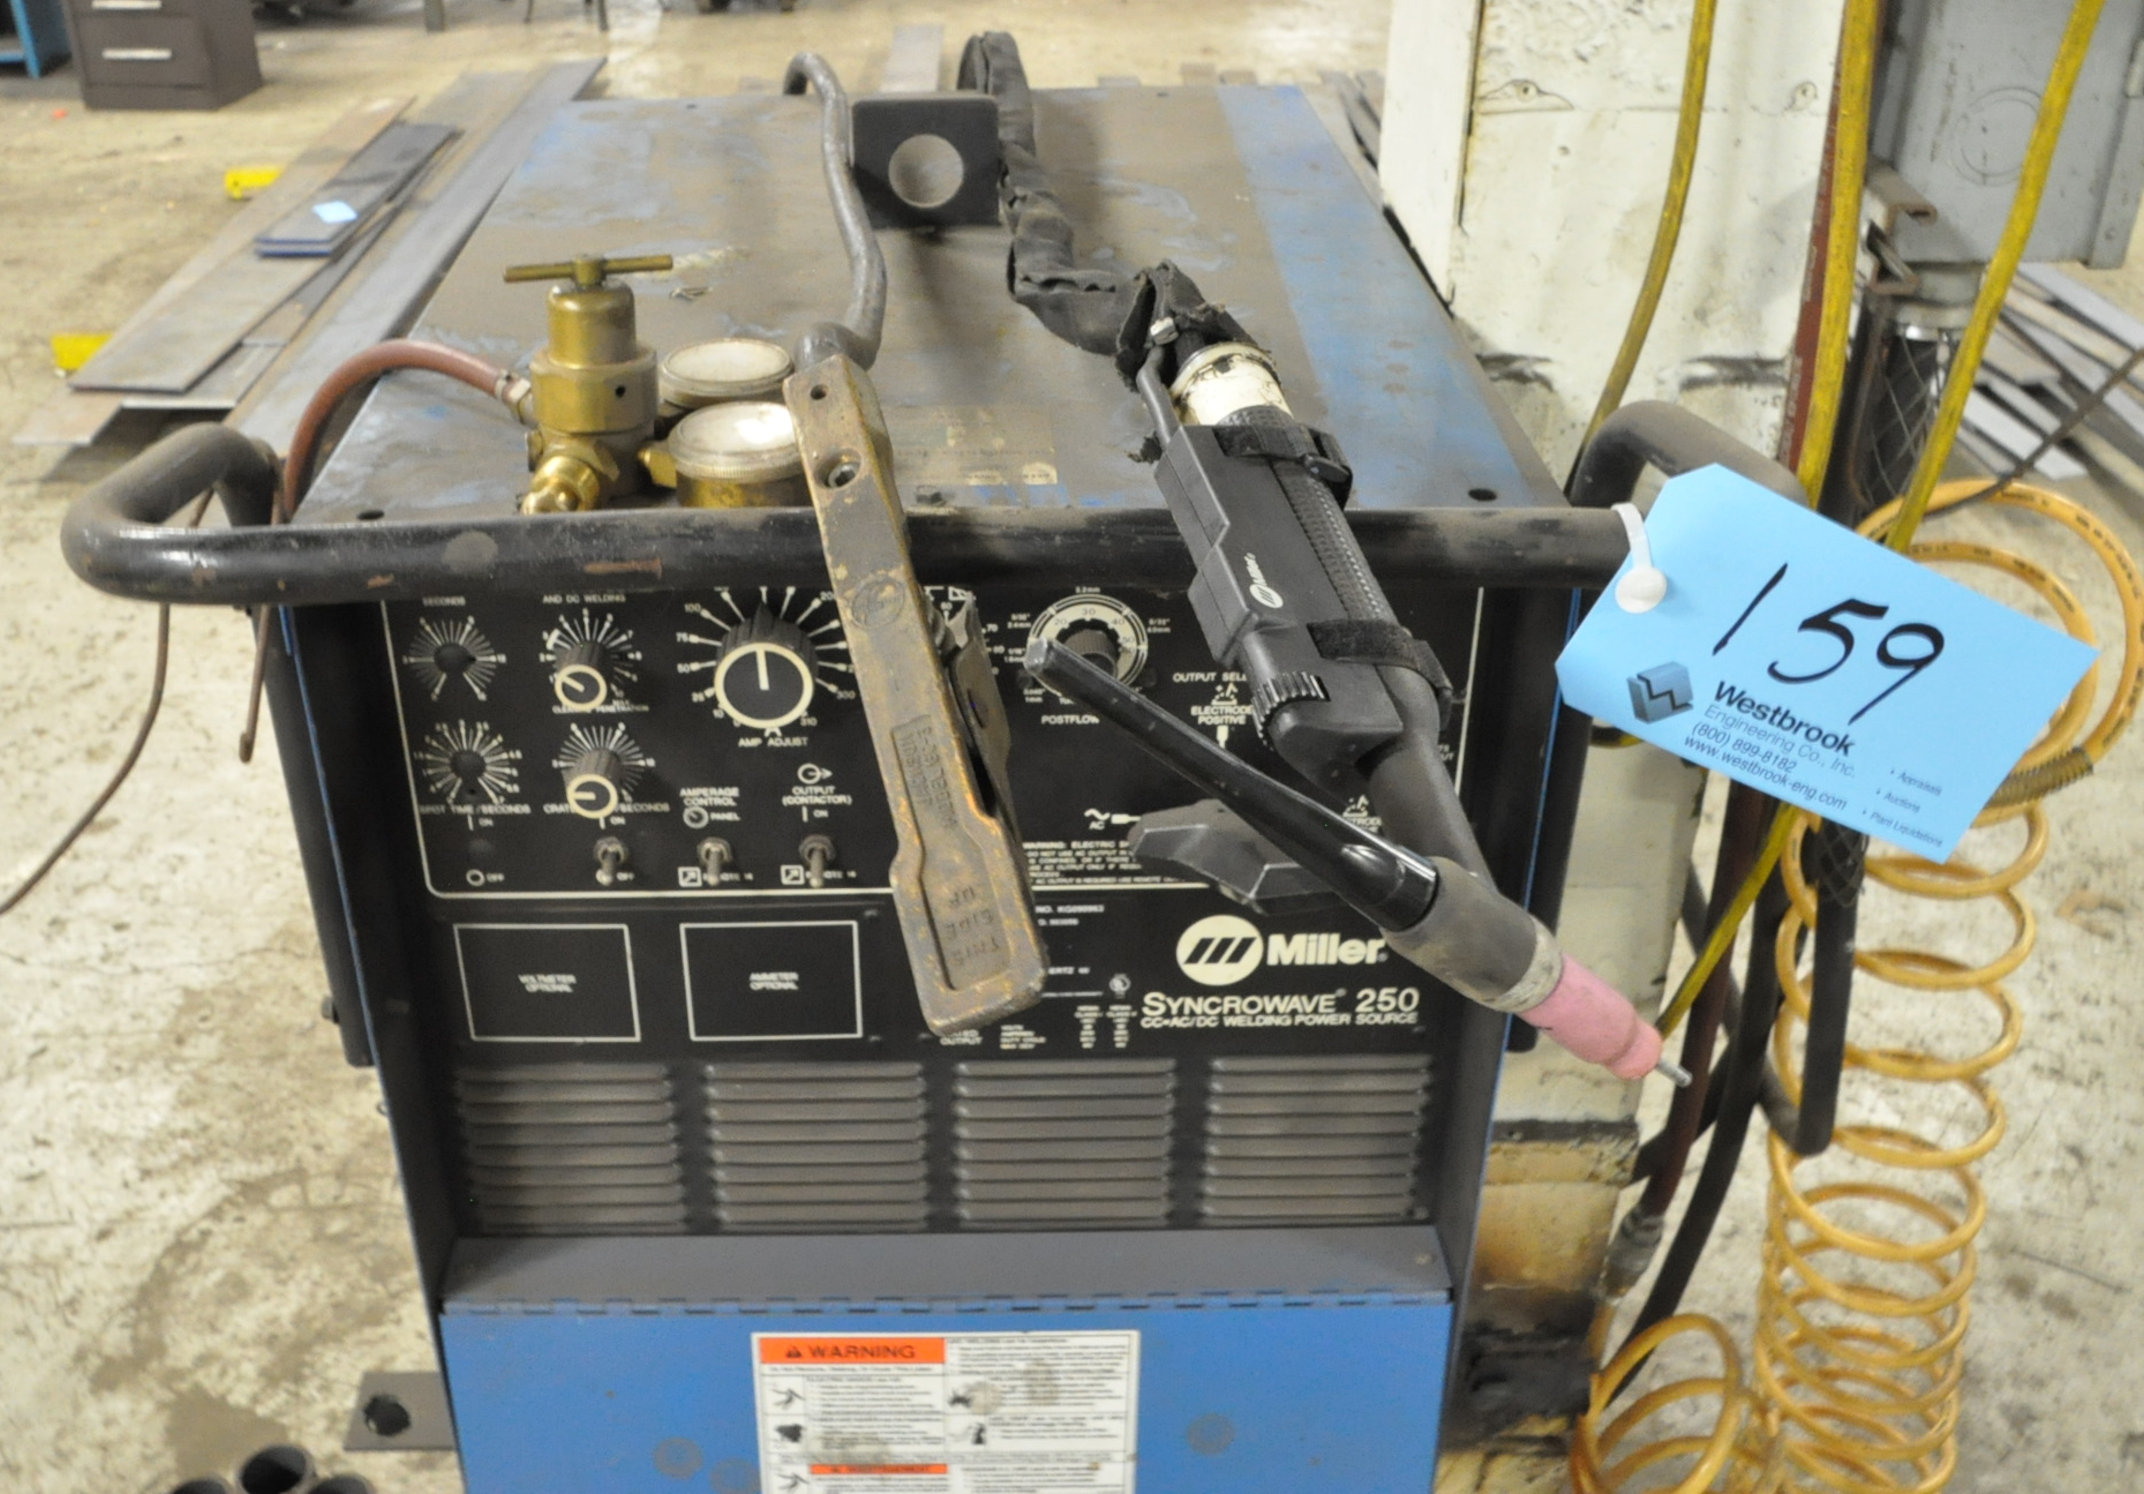 Miller Syncrowave 250, CC AC/DC Tig Welder, S/n KG090963 (1996), with Leads - Image 2 of 4